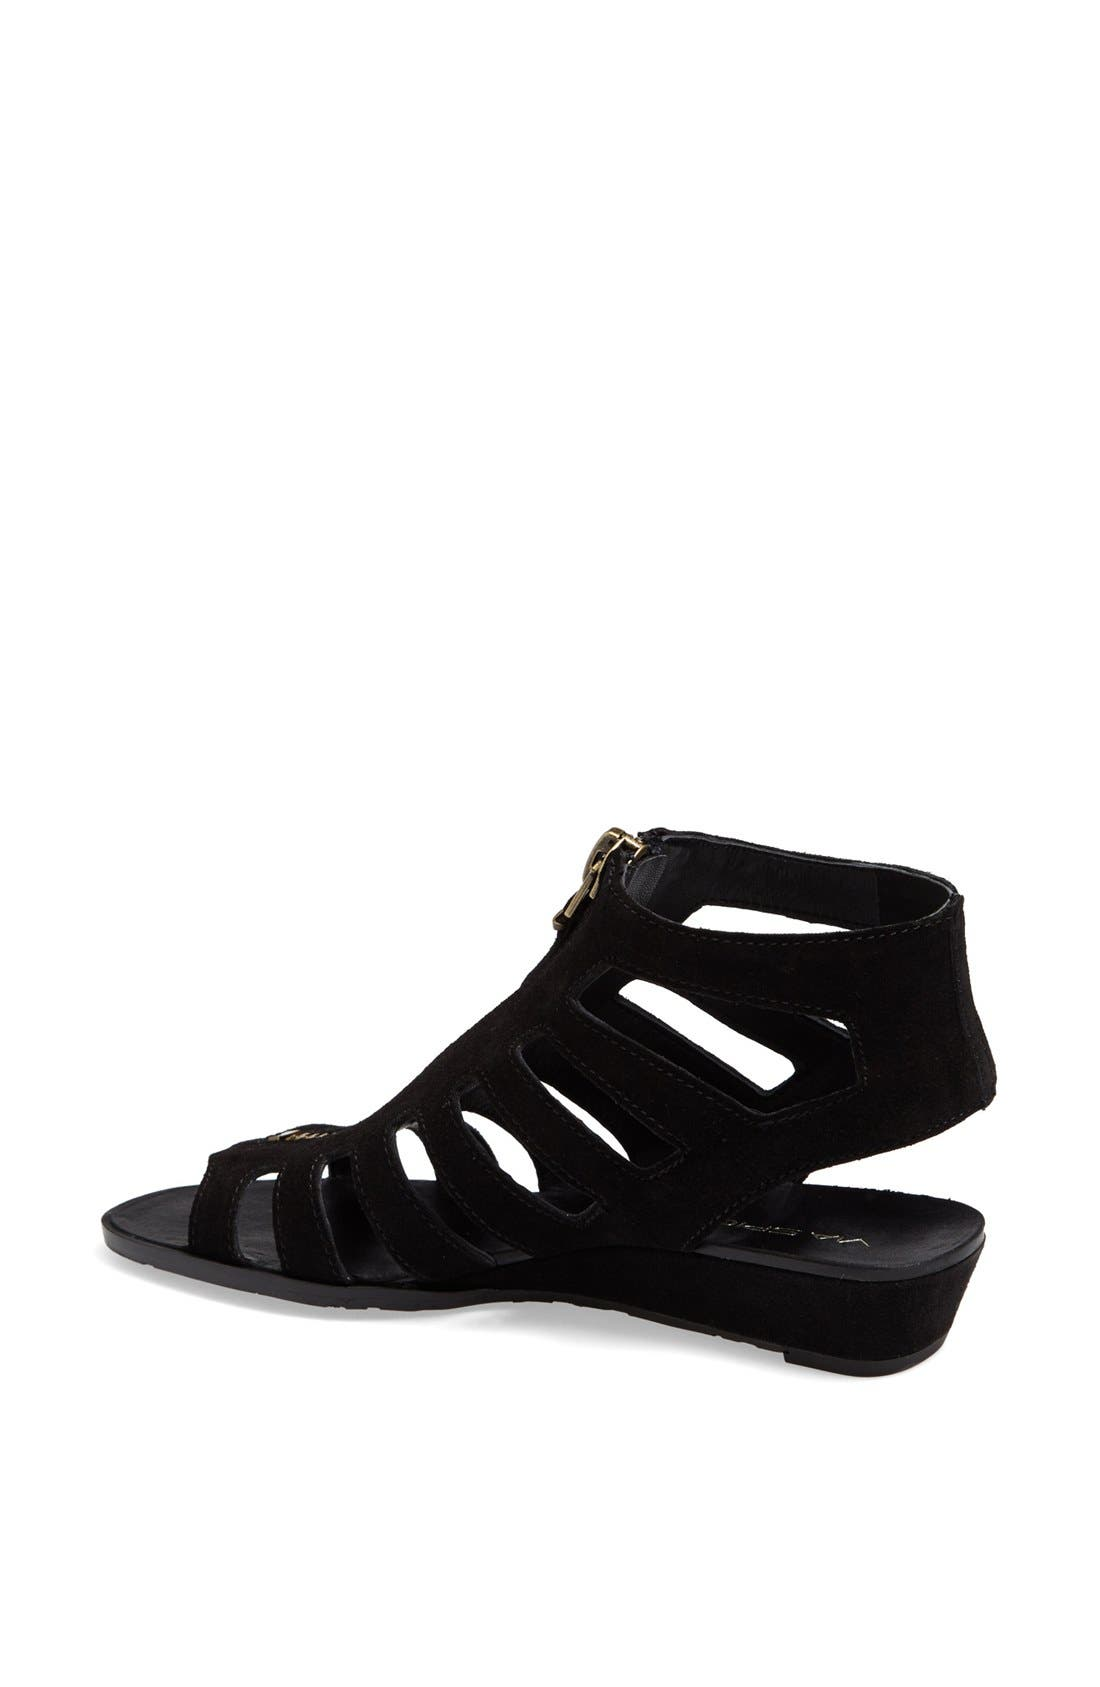 Alternate Image 2  - Via Spiga 'Park' Sandal